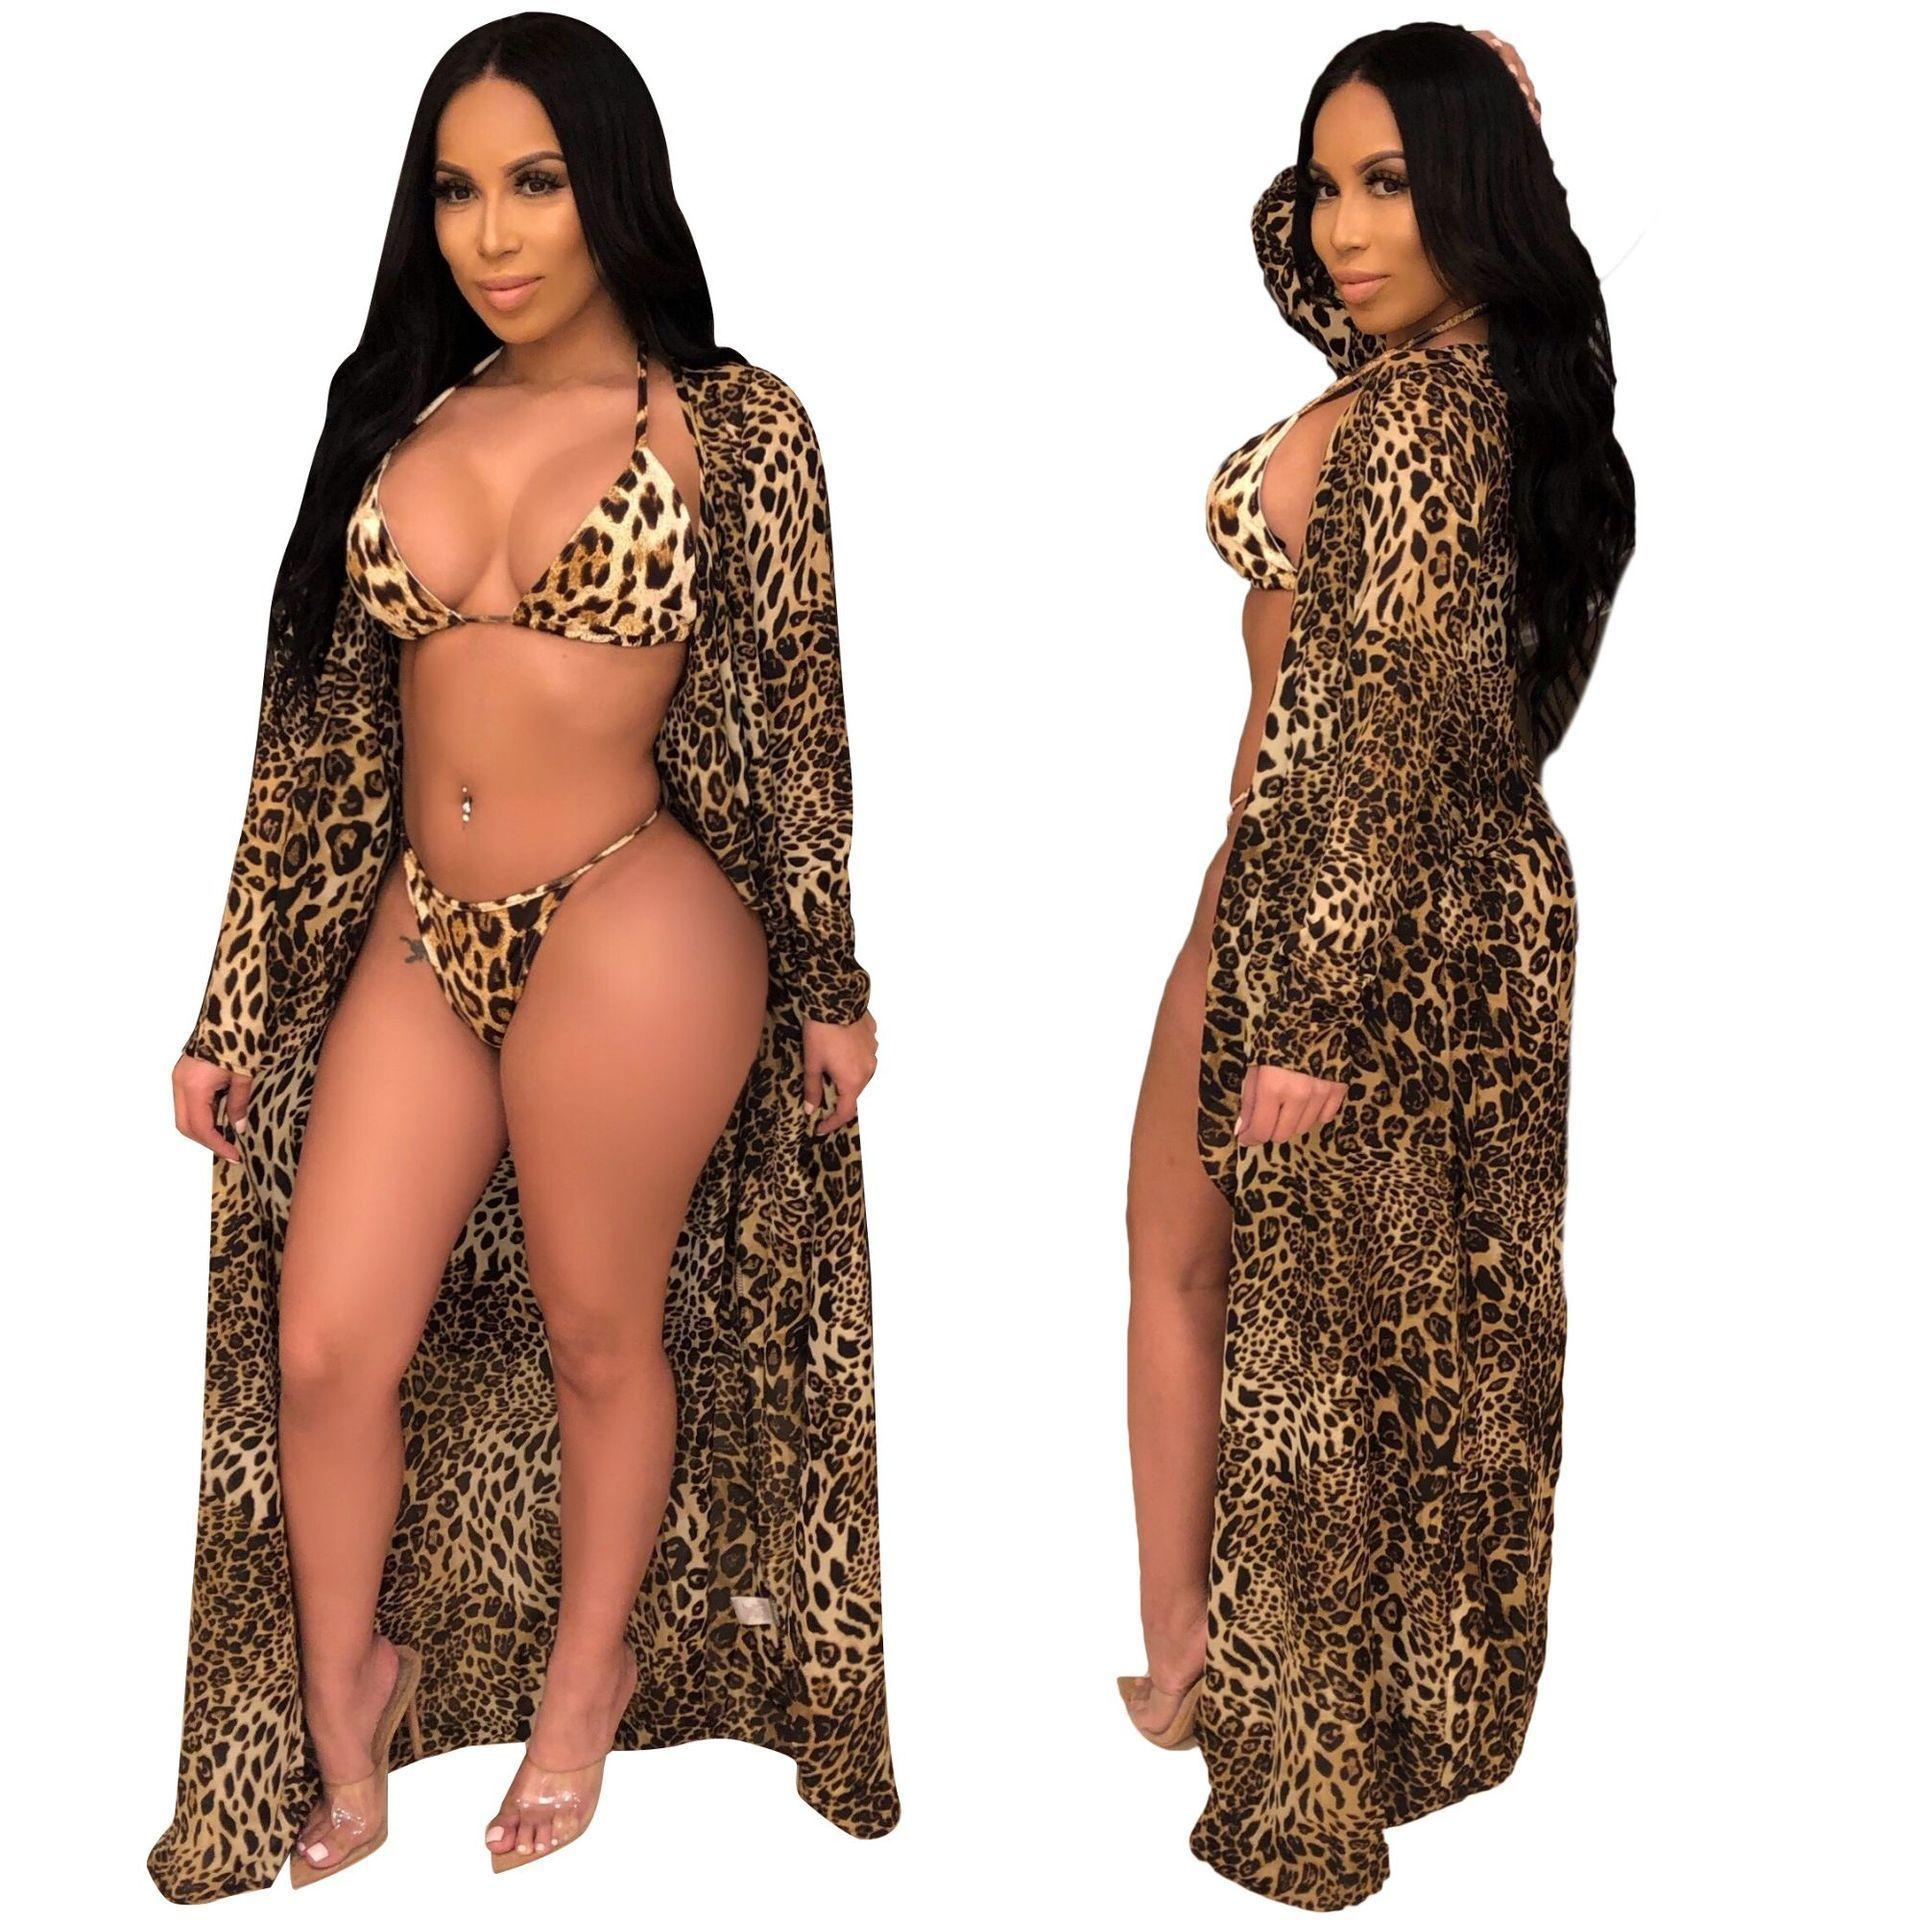 Spot 6203 ladies fashion explosion models Europe and America leopard swimsuit bikini three-piece hoodies woman DRESSES women sport Printed